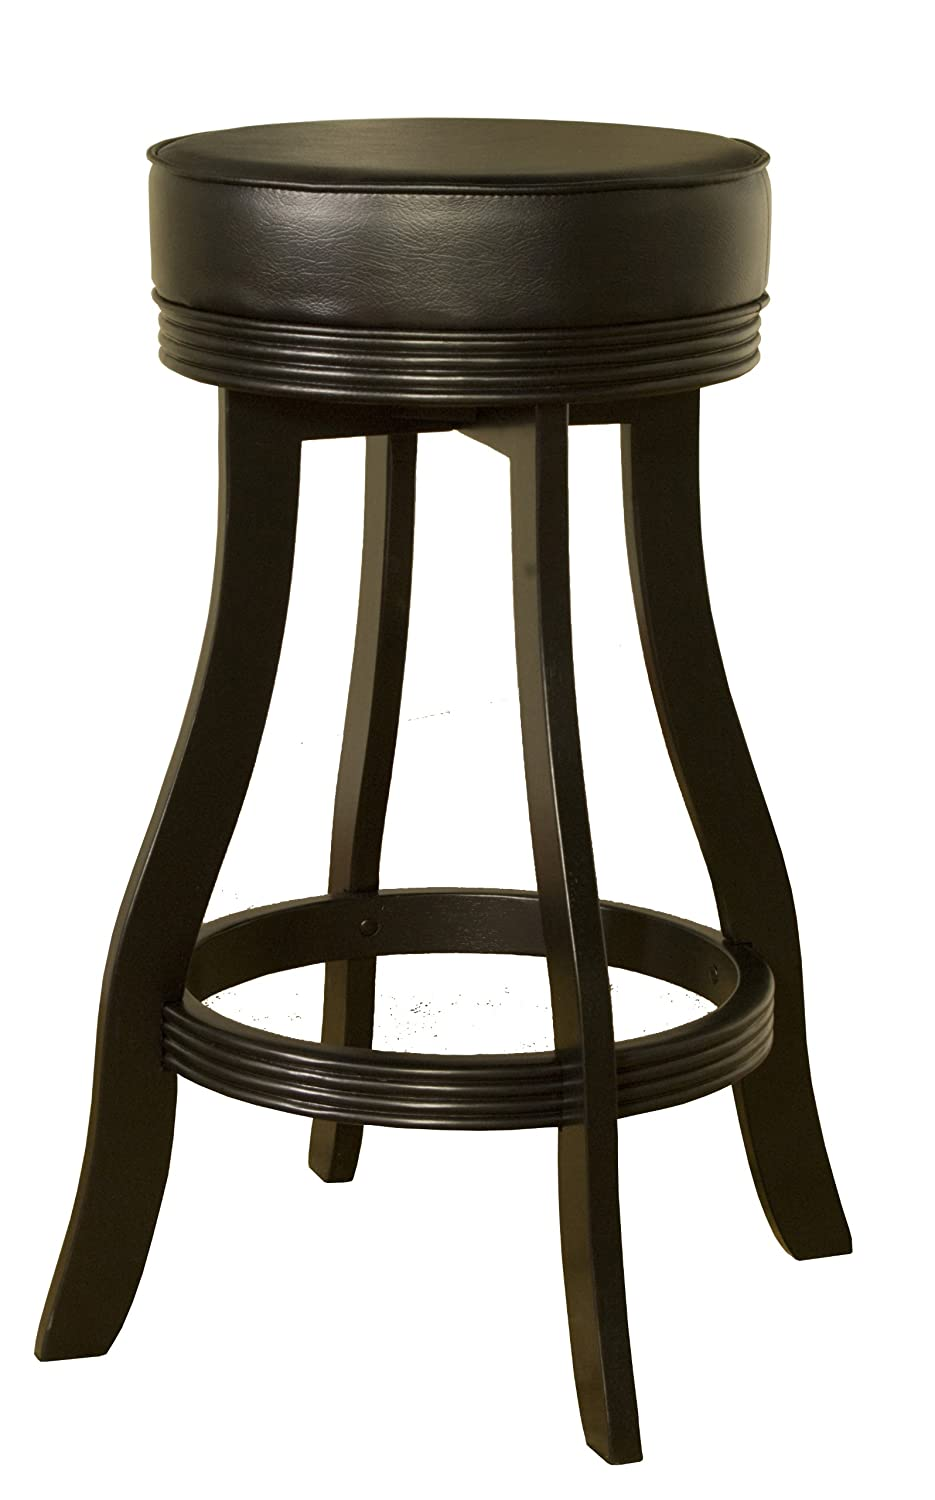 Super American Heritage Billiards Designer Stool Black Inzonedesignstudio Interior Chair Design Inzonedesignstudiocom